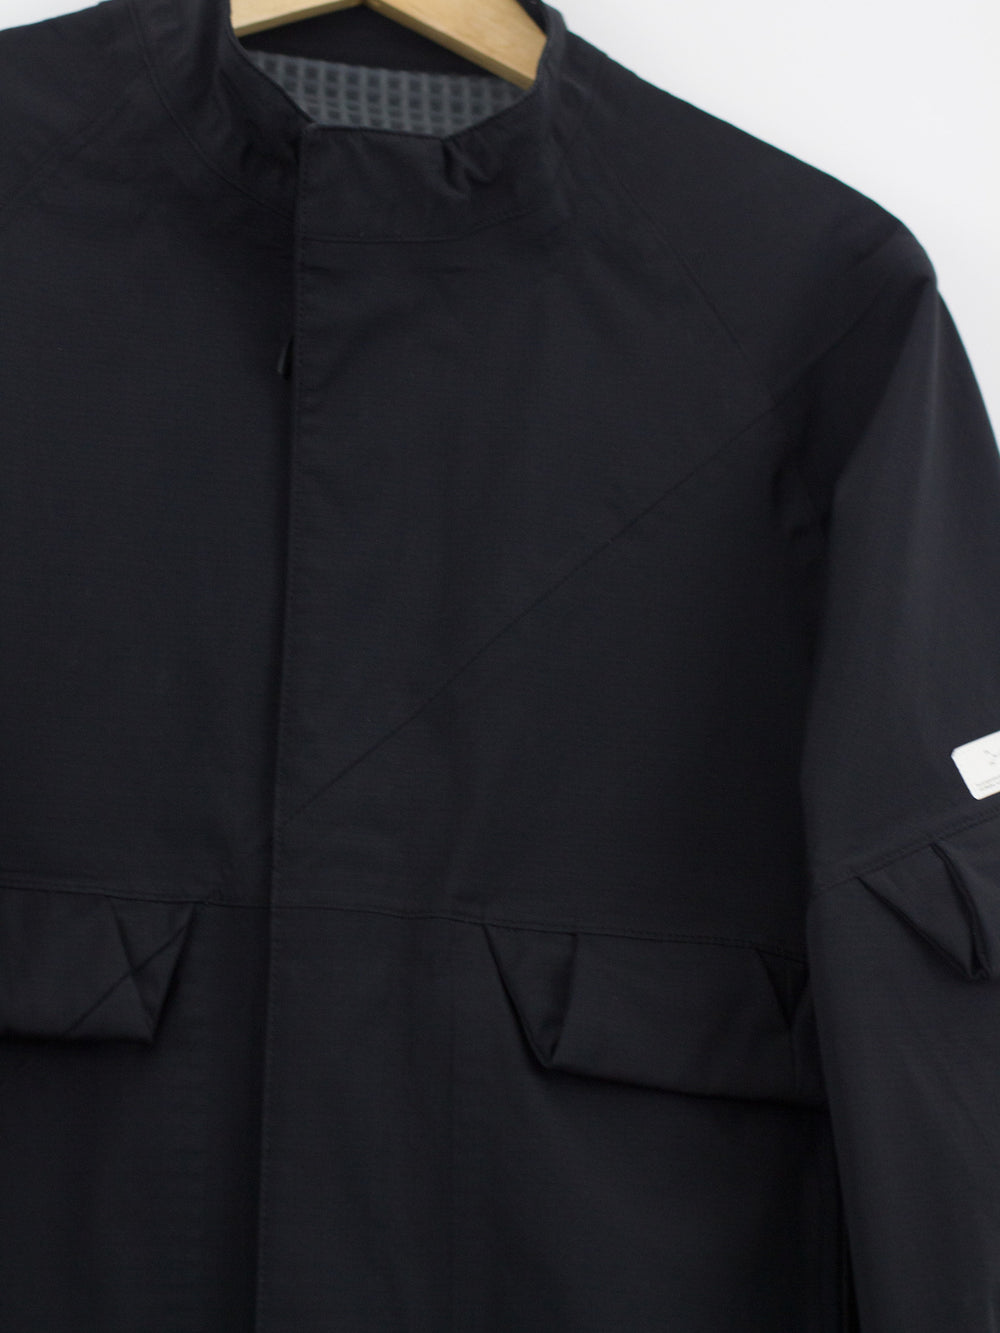 Undercover AW10 Geometric Gore-Tex